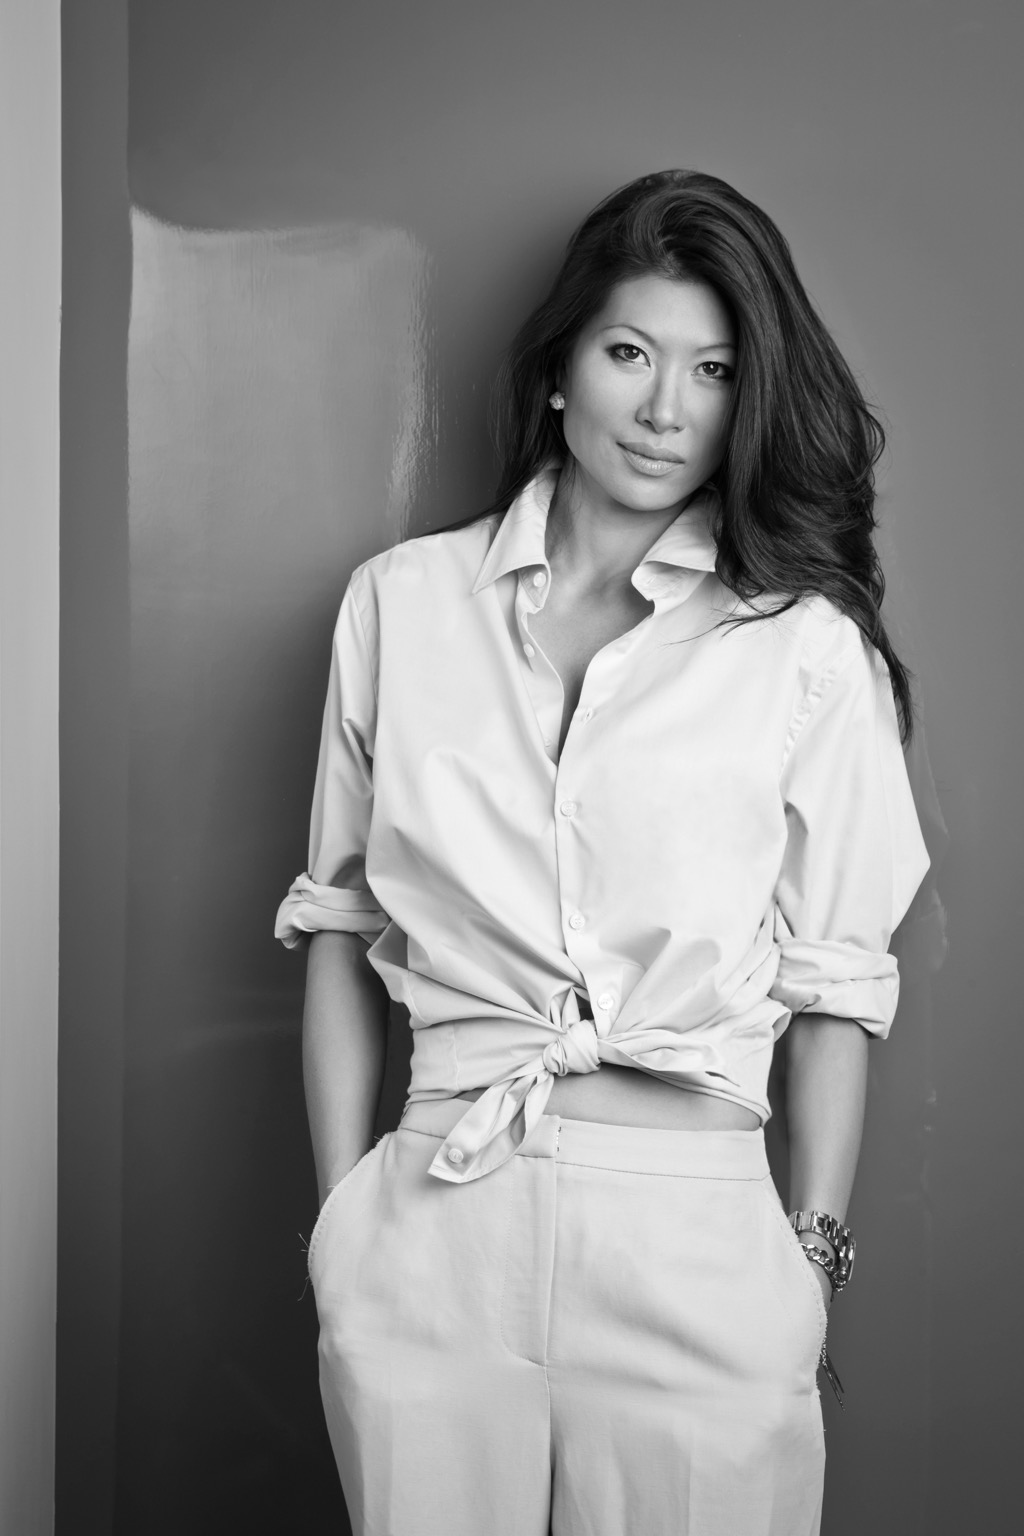 monika chiang, designer of sexiest new shoes